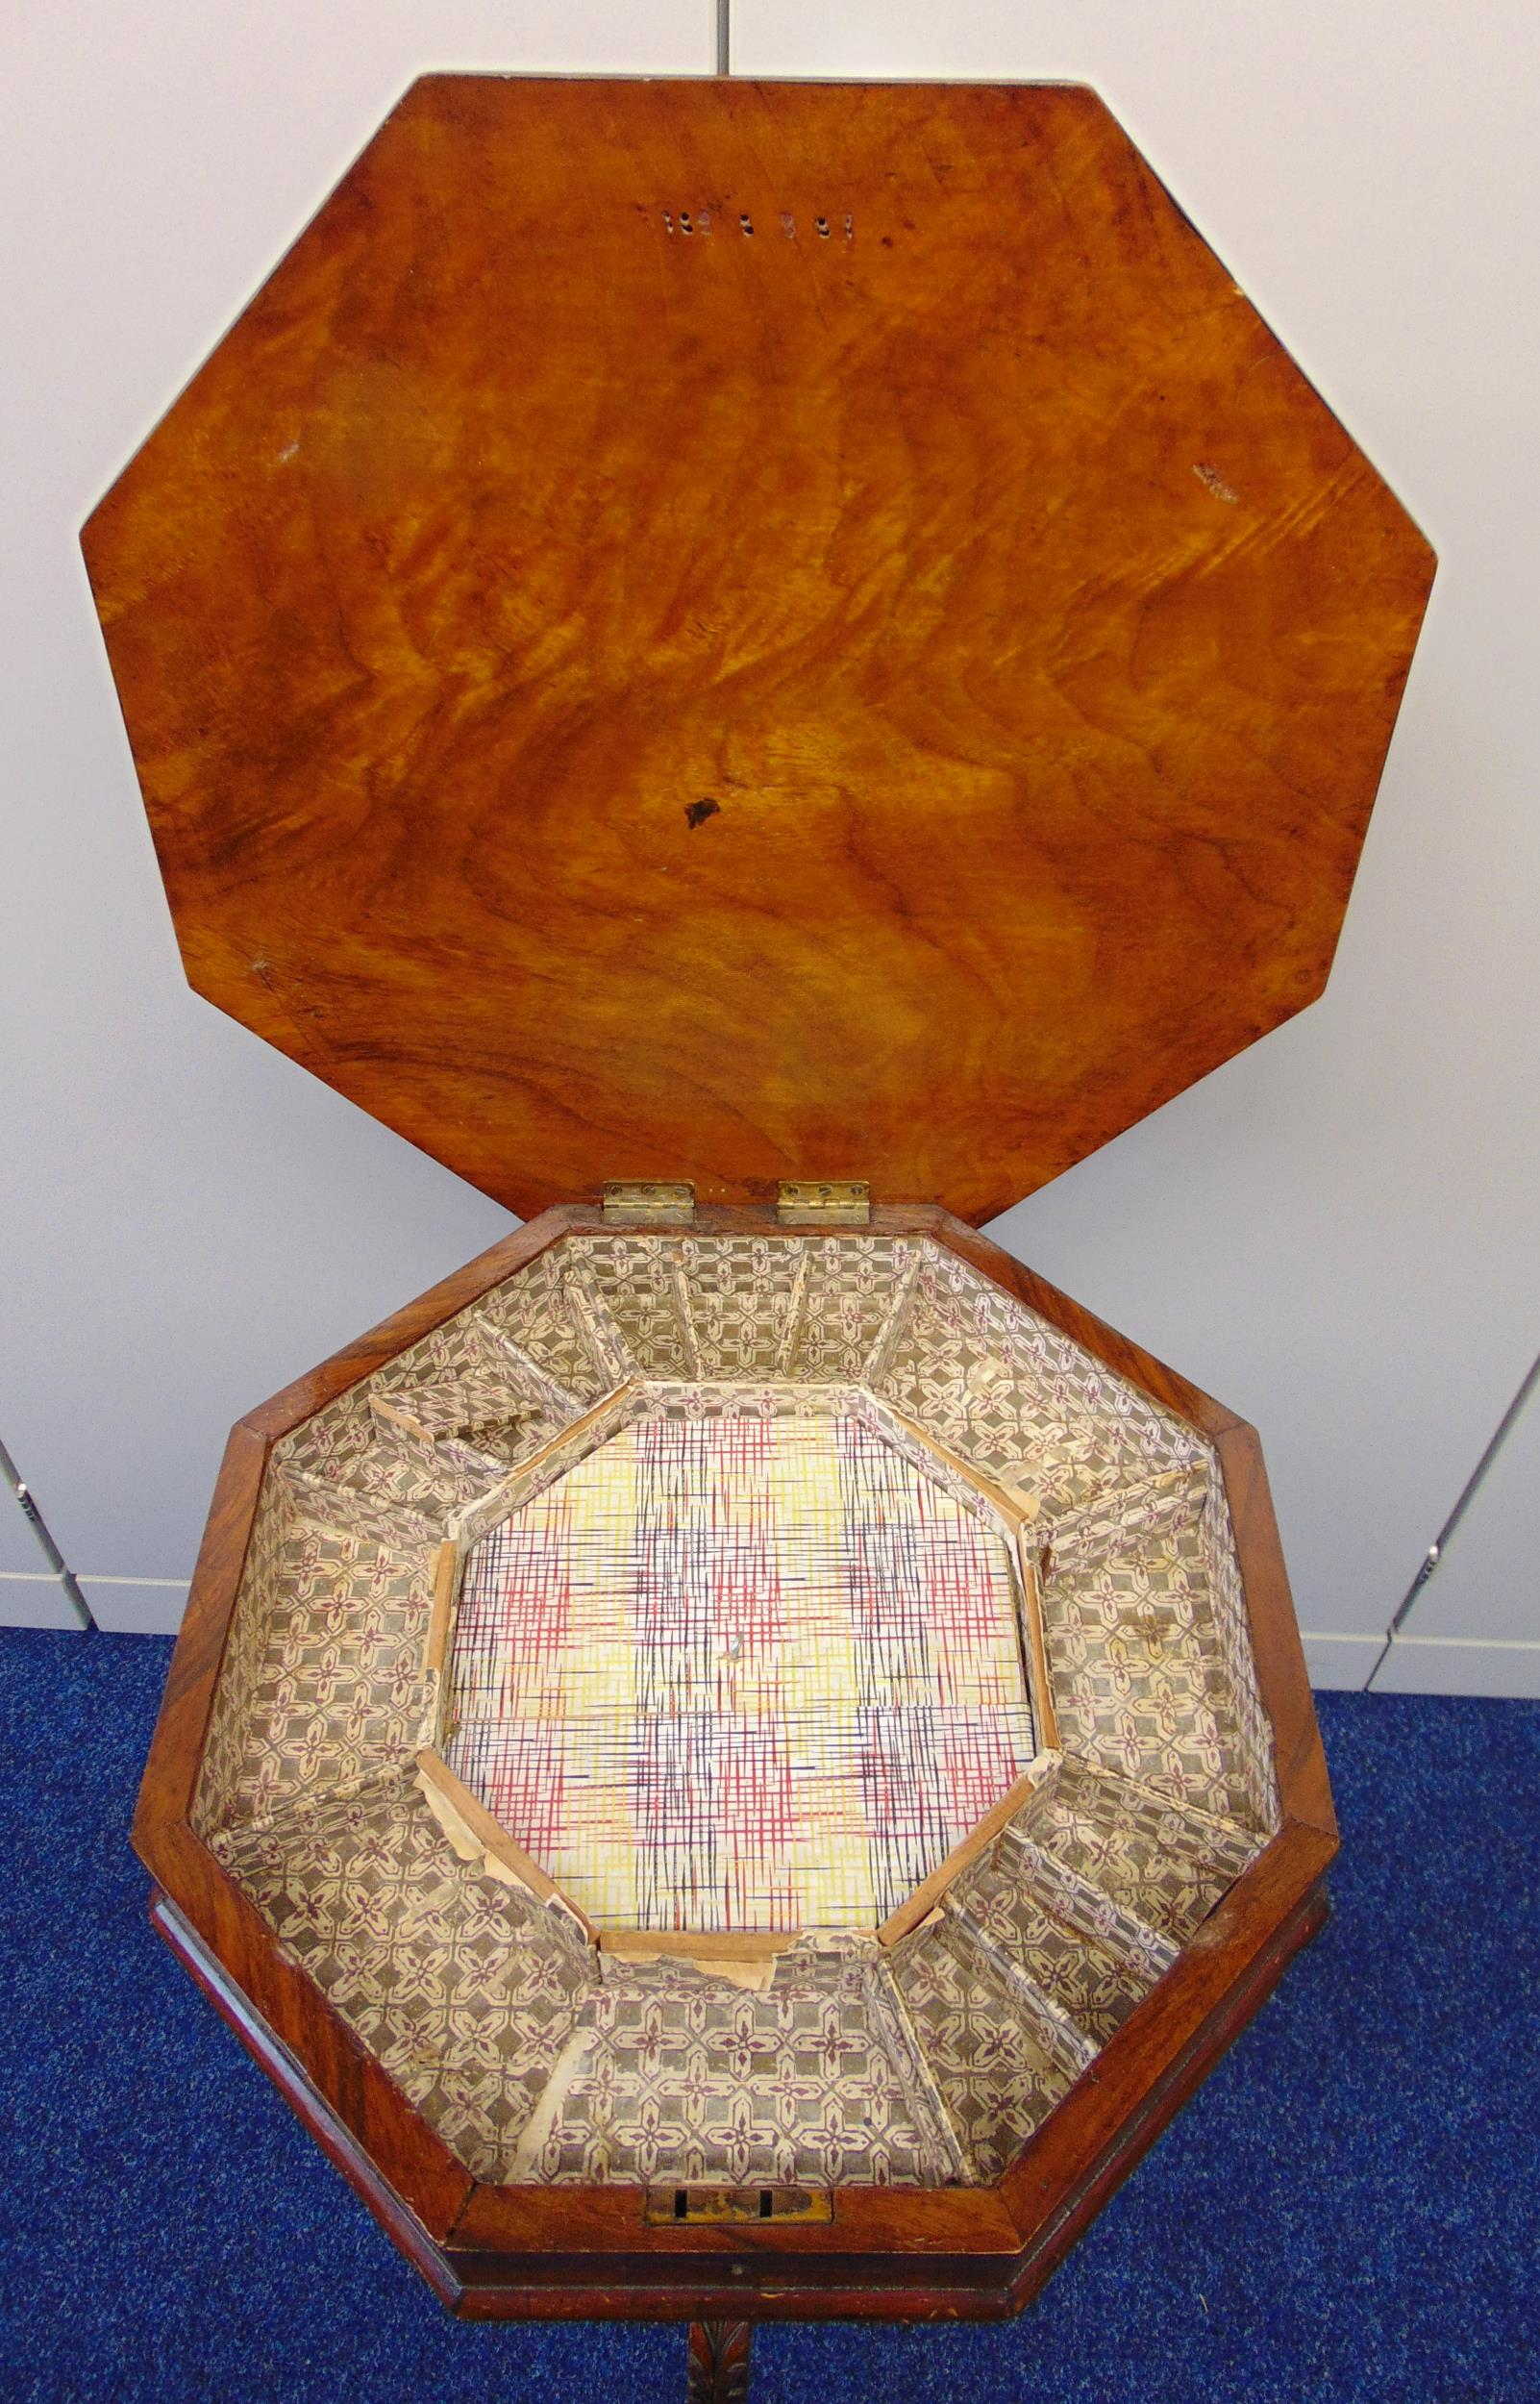 A Victorian octagonal mahogany and satinwood sewing table, the hinged cover revealing a fitted - Image 2 of 2